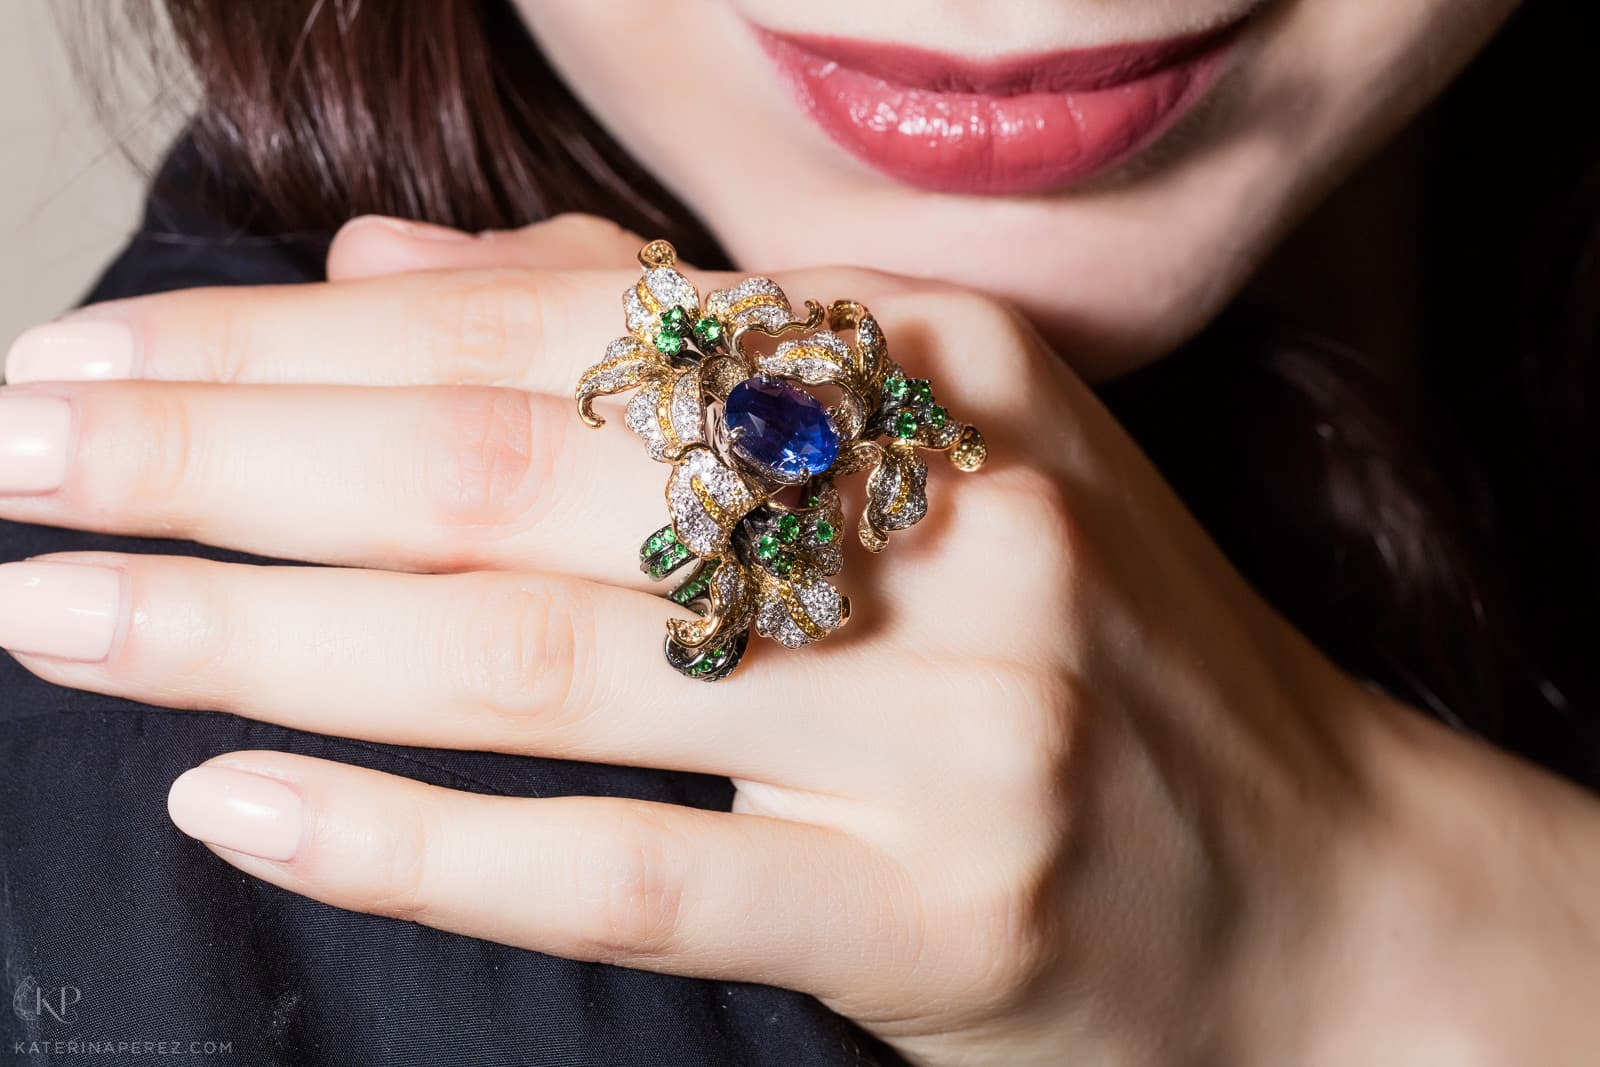 Caratell flower ring with an oval sapphire, tsavorires and diamonds